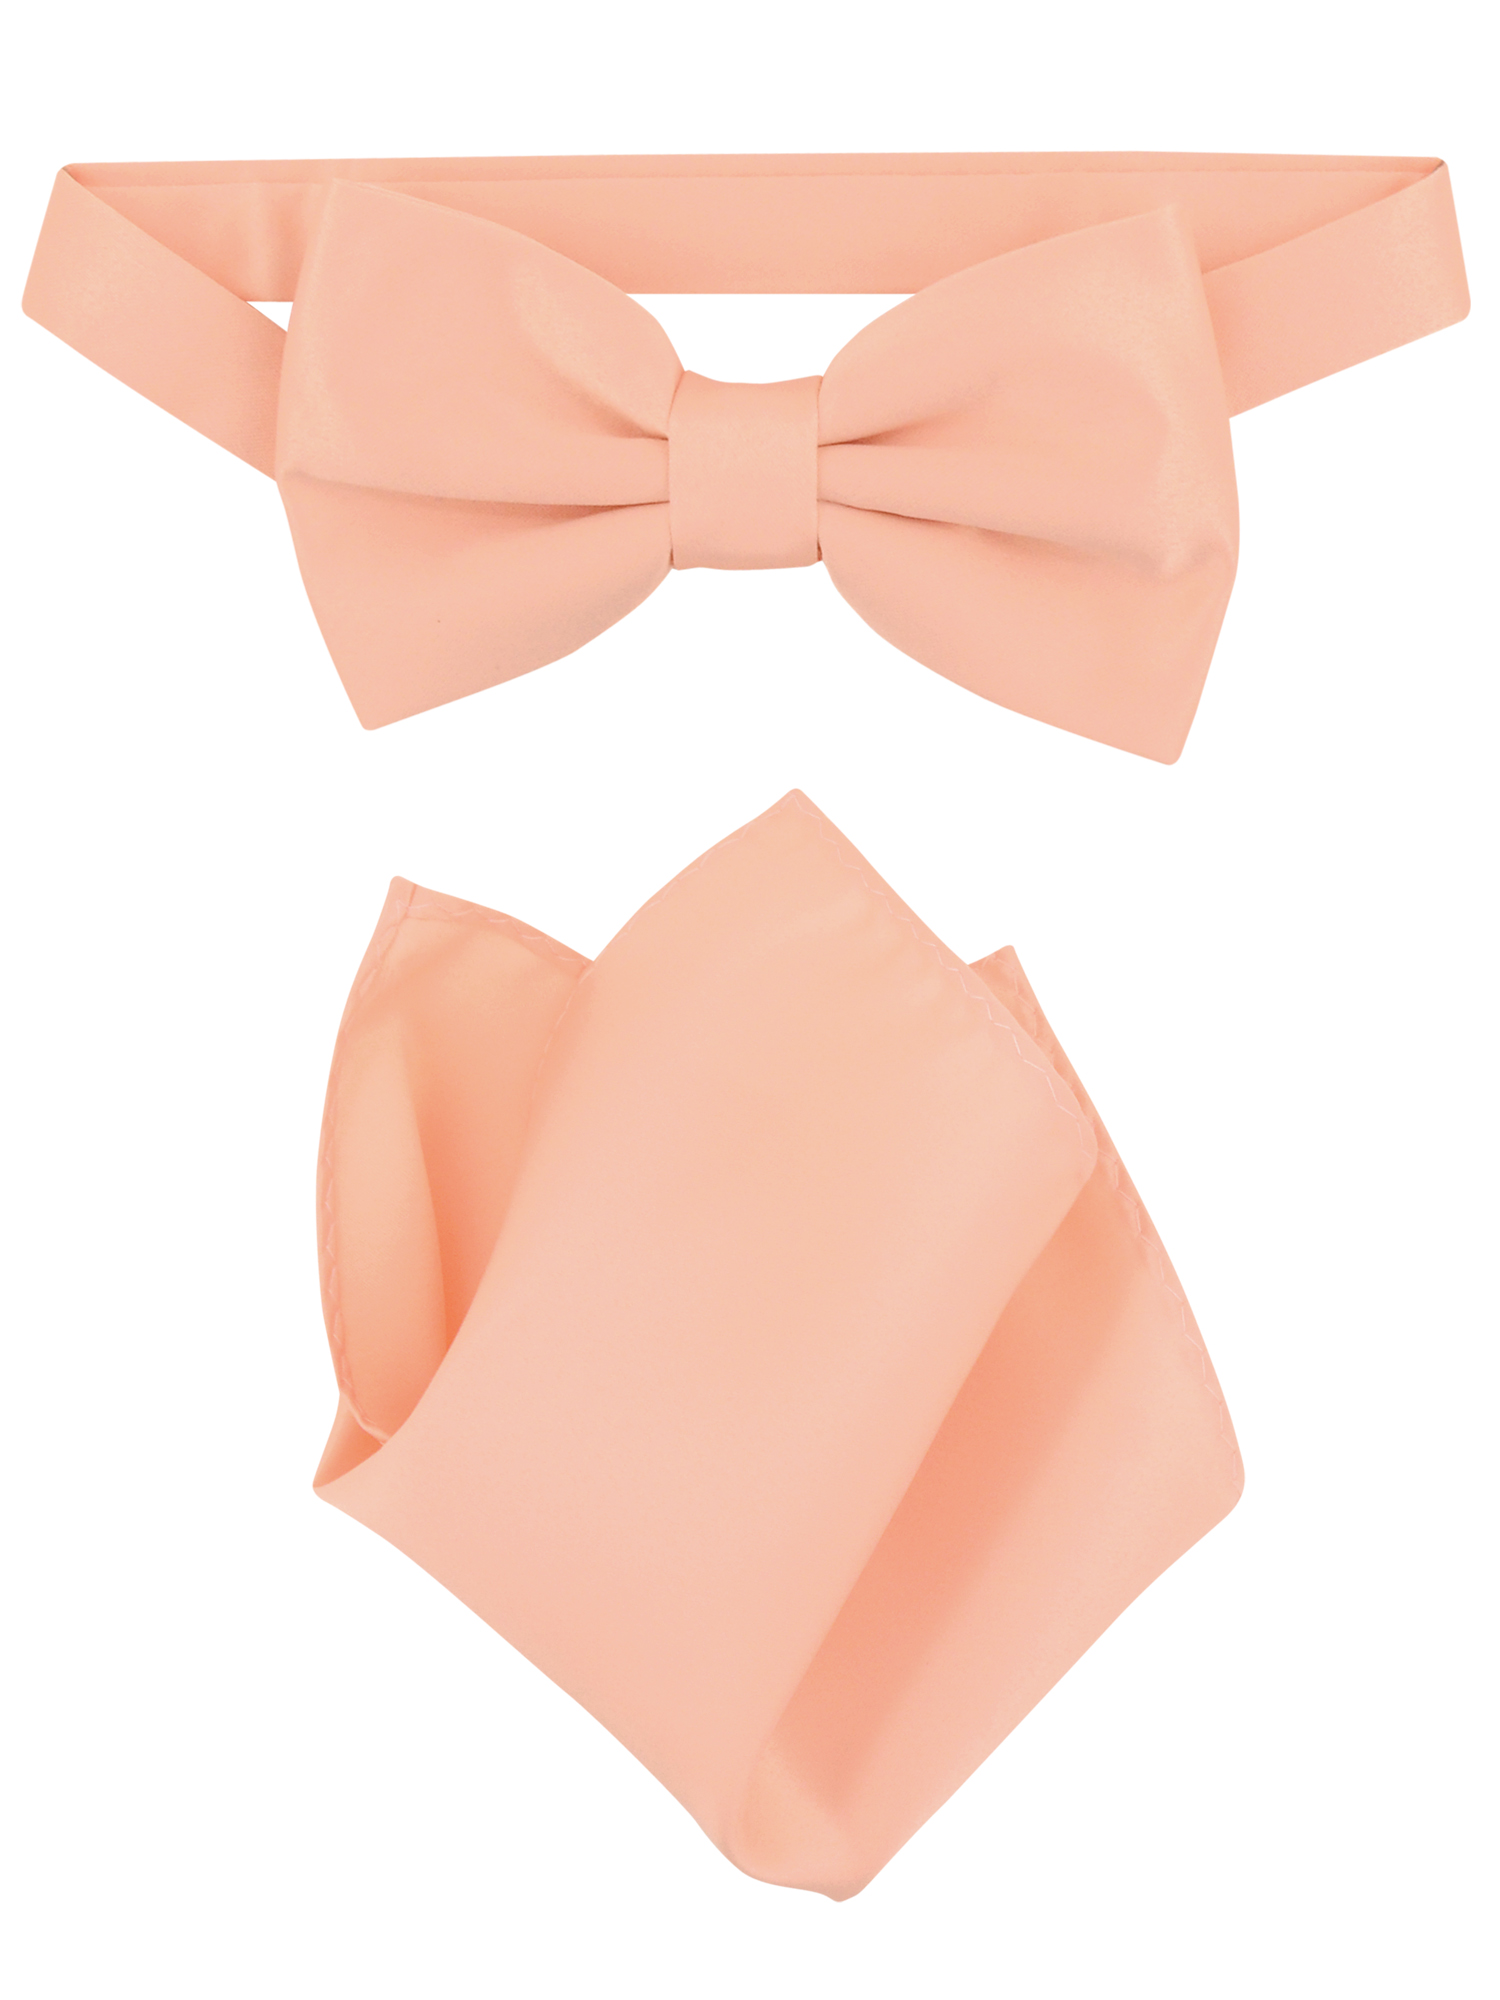 24 Colors Bow Tie Metallic Bow Ties Canvas Bowtie Blush Pink Bowties